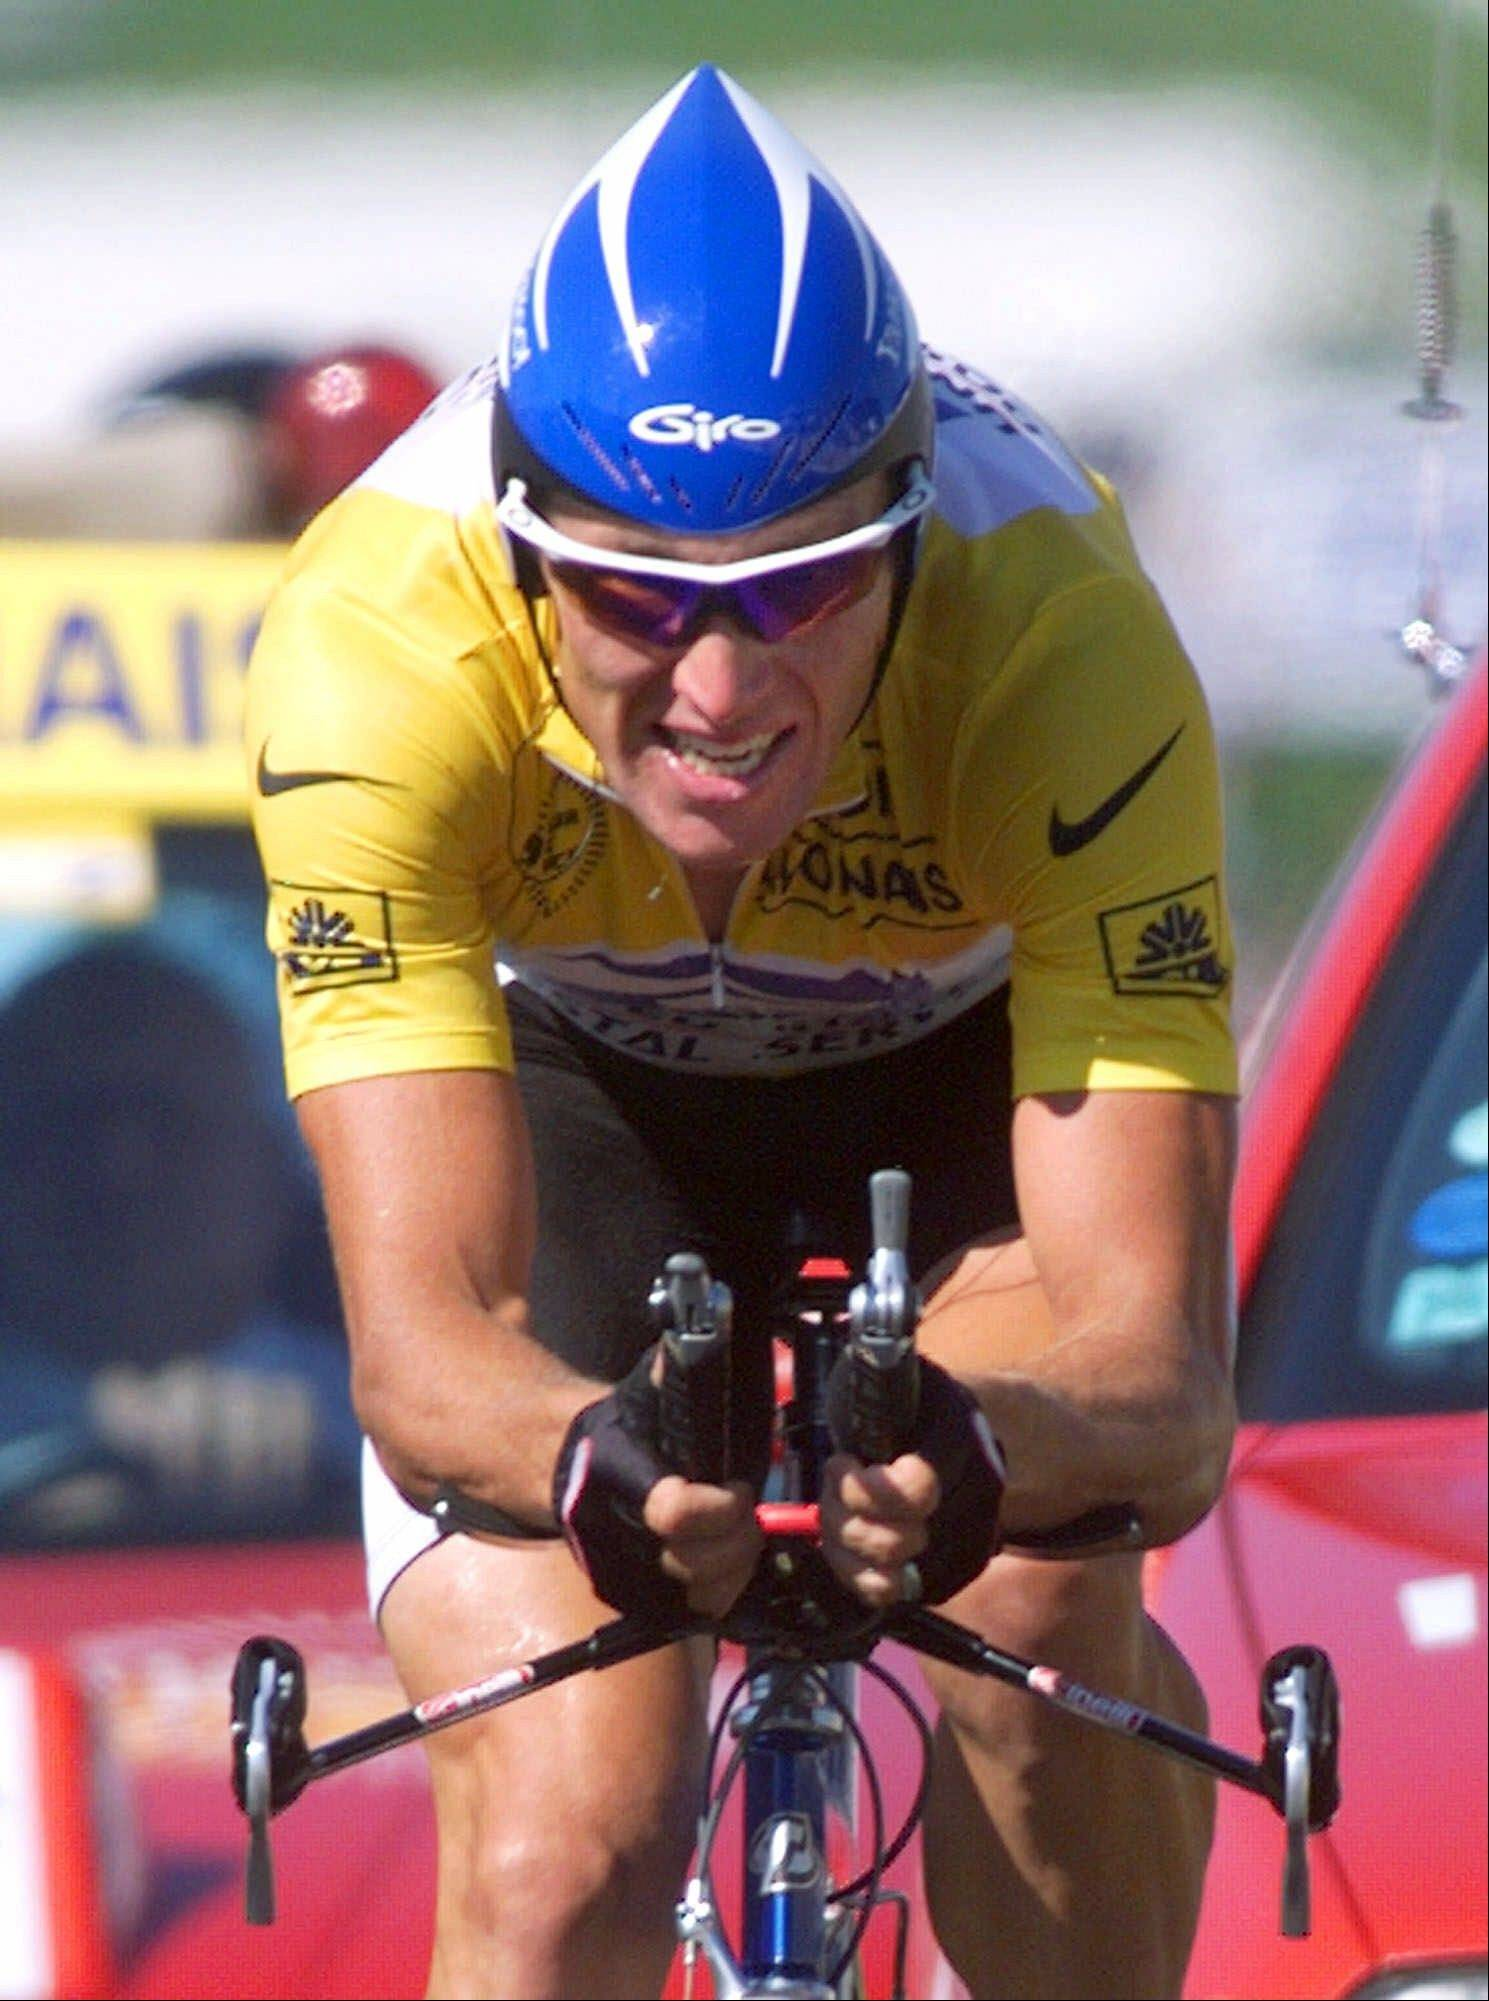 Tyler Hamilton alleges in his book, �The Secret Race. Inside the Hidden World of the Tour de France, Doping, Cover-ups and Winning at All Costs,� that Lance Armstrong, shown here in 1999, gave him an illegal blood booster at his house before the 1999 Tour de France and the two teammates compared notes on using performance-enhancing drugs as far back as 1998.